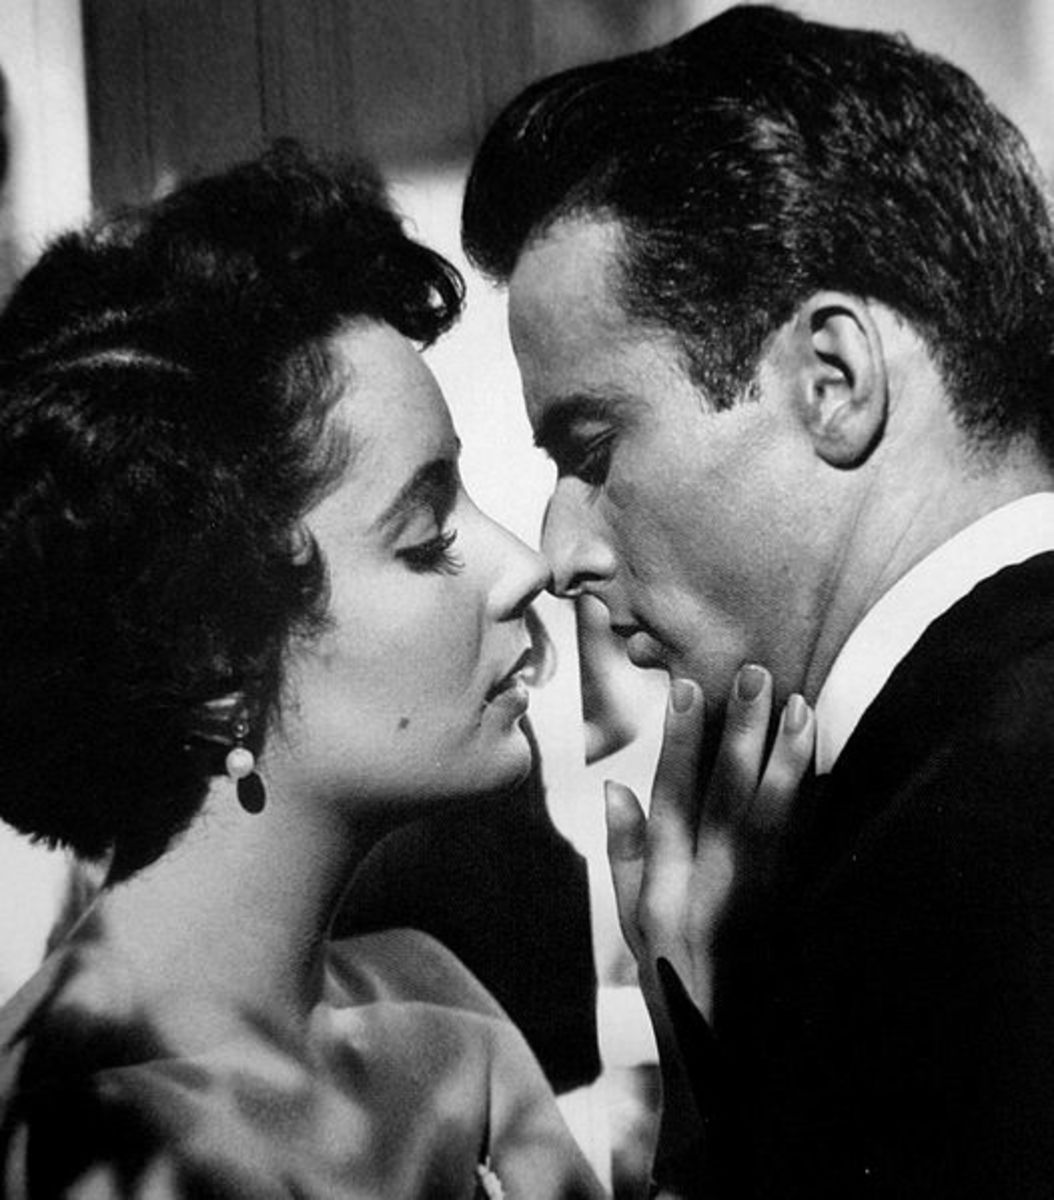 Elizabeth Taylor and Montgomery Clift in Suddenly, Last Summer